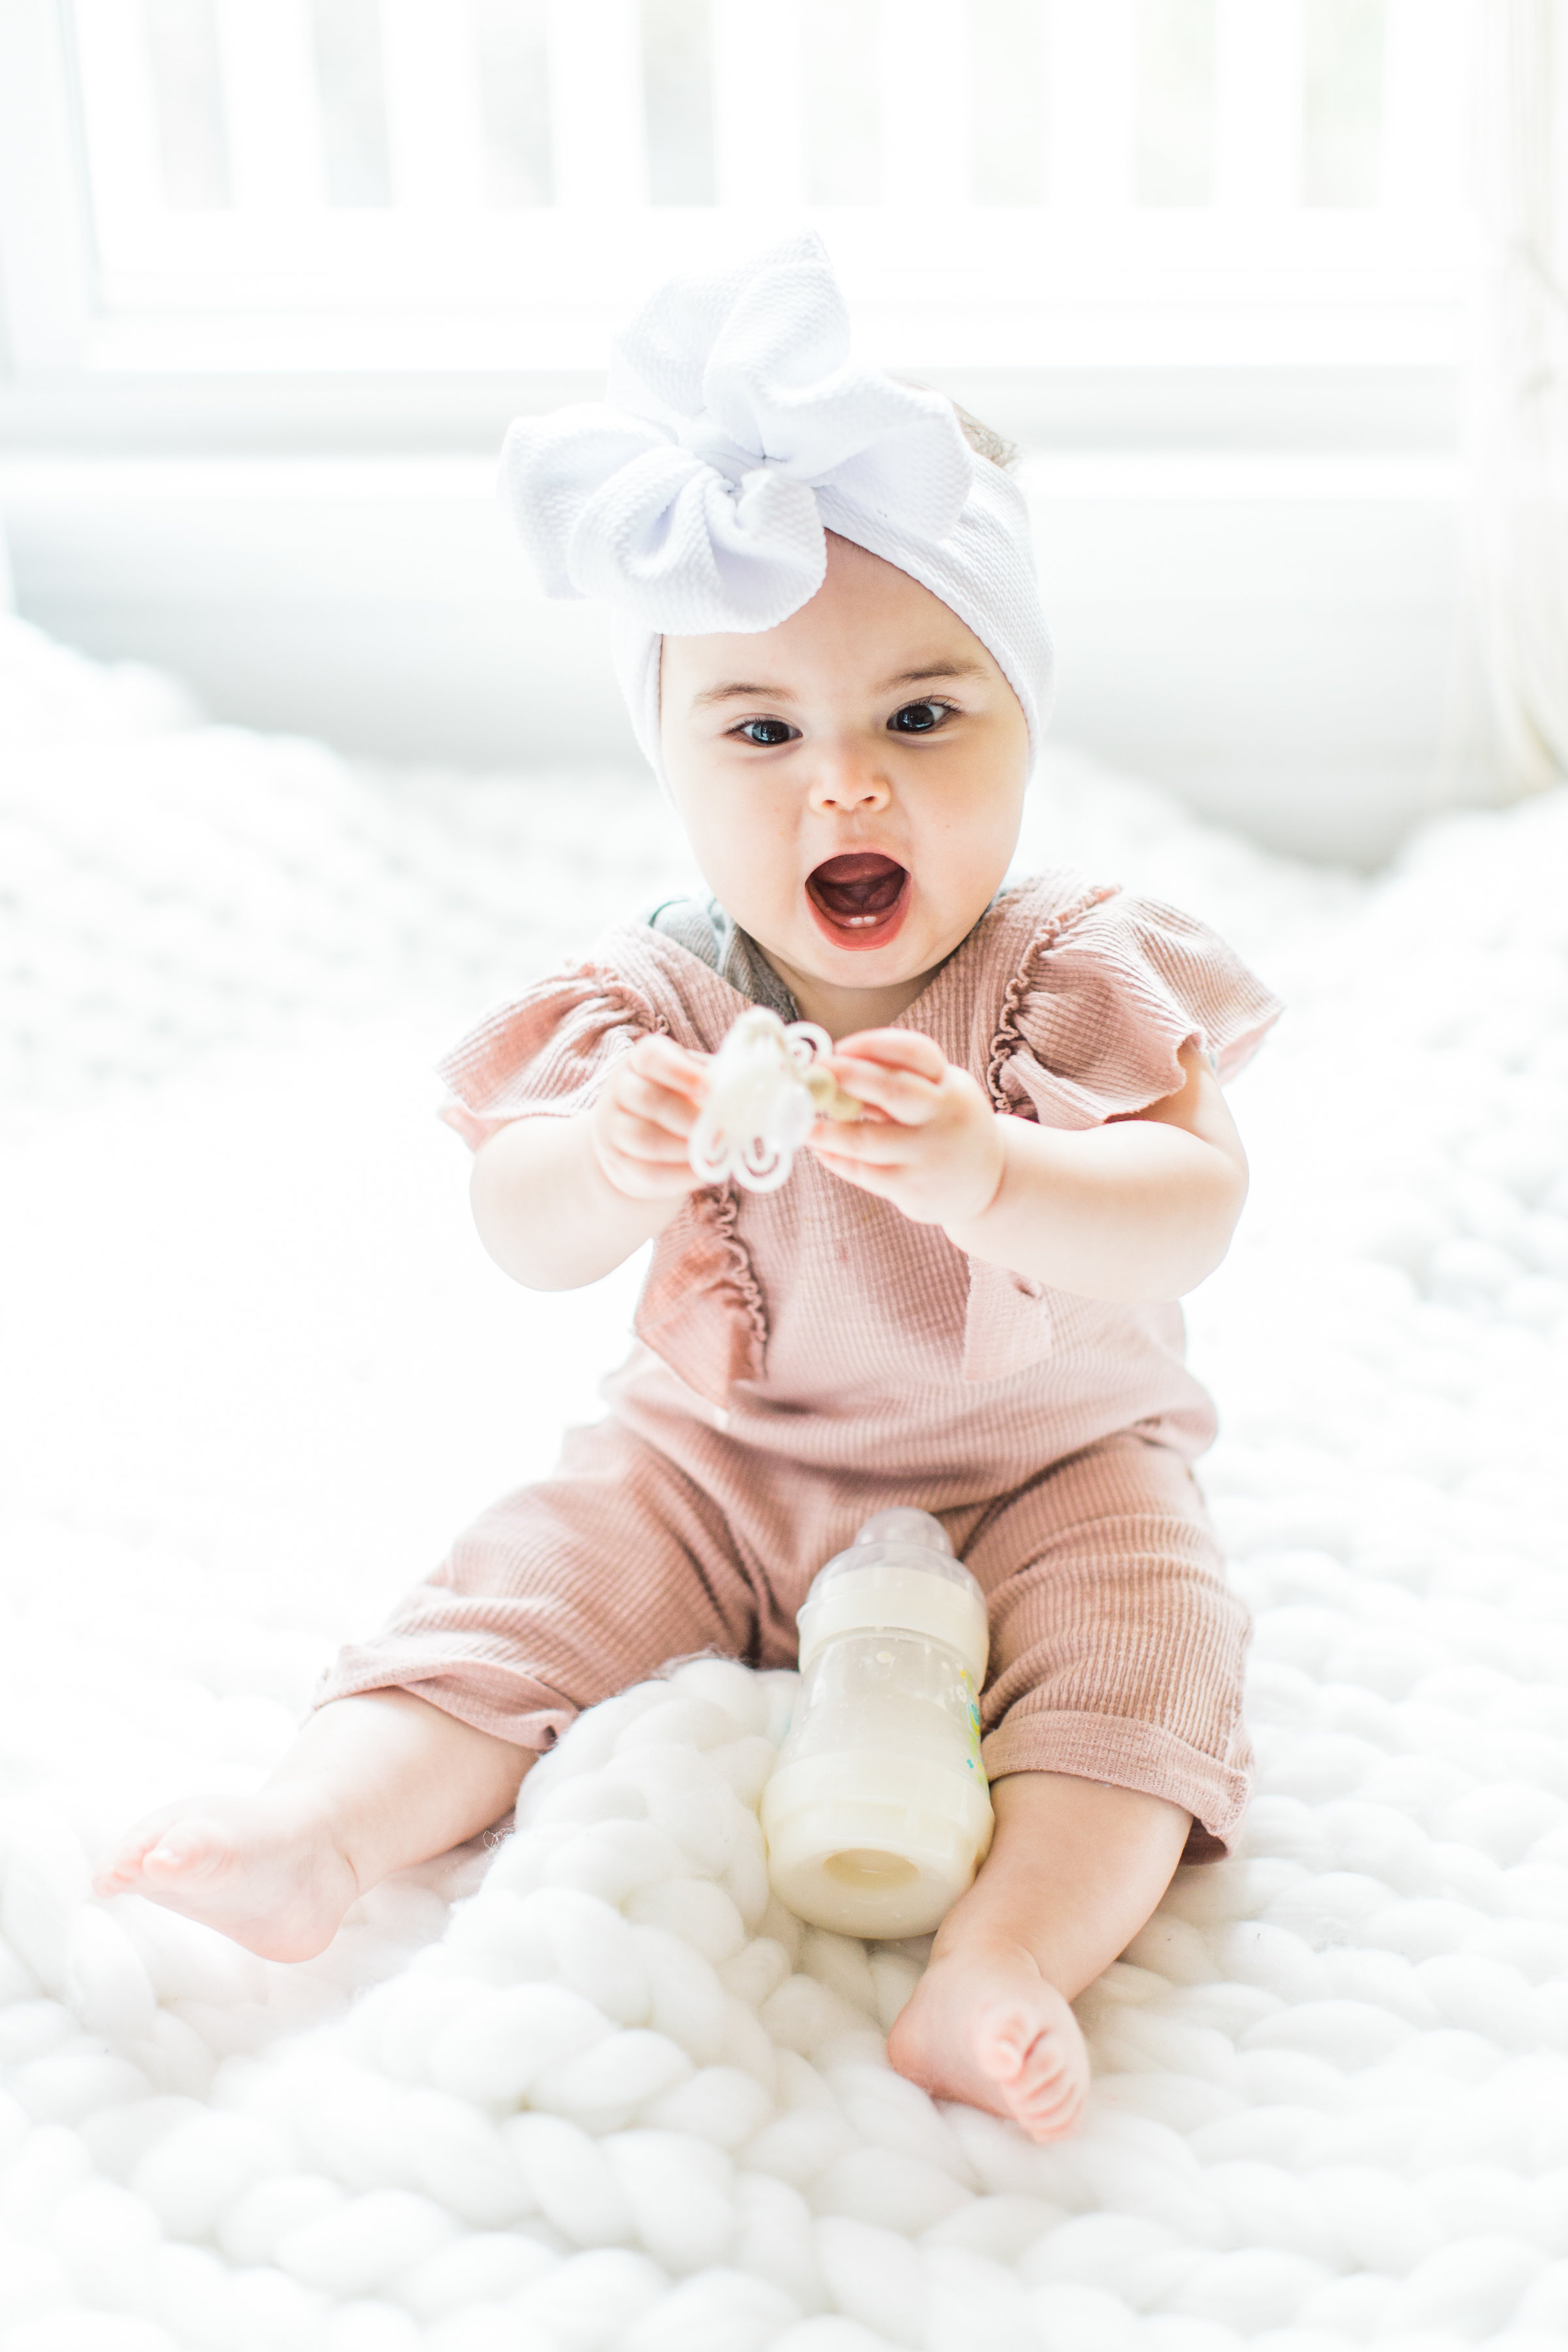 Having a baby with acid reflux can feel like the most exhausting uphill battle when you're a new parent. These are 7 tips and tricks for helping babies with reflux (that actually work!), plus a few hallmark signs that your baby does in fact have reflux. Click through for the details. #acidreflux #gerd #colic #howtotreatreflux | glitterinc.com | @glitterinc